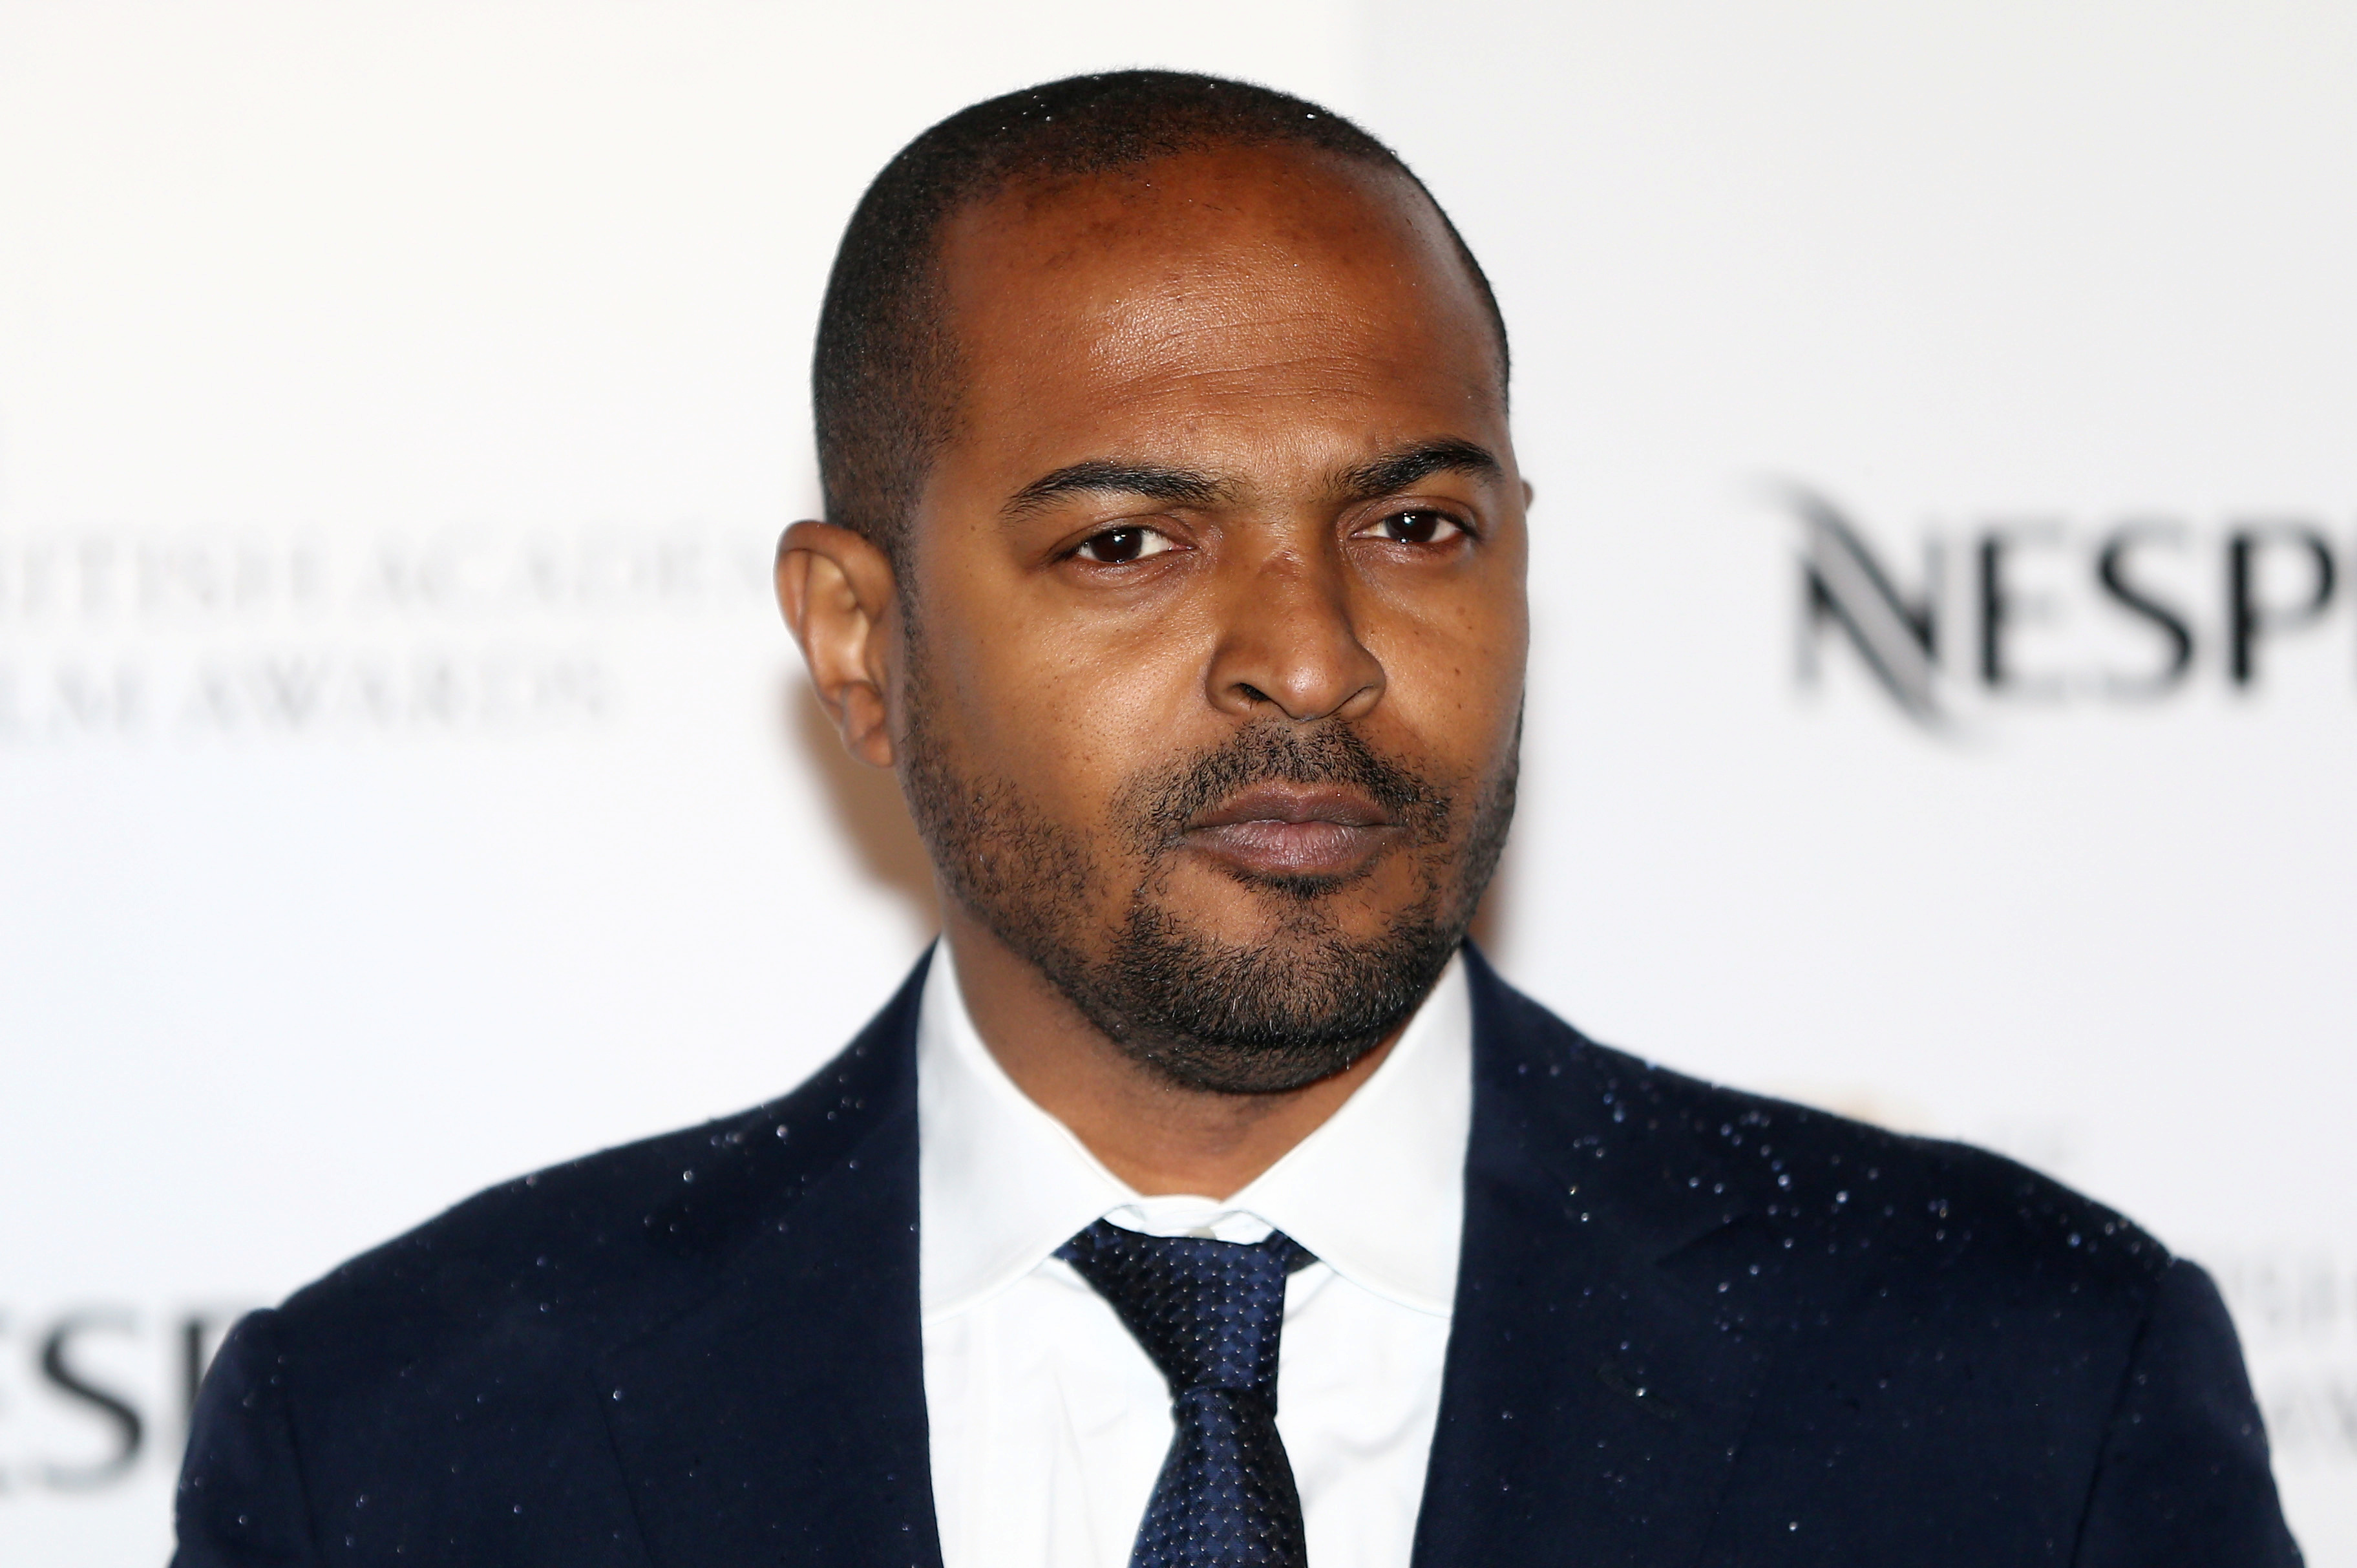 Actor Noel Clarke poses for photographers at the British Academy Film Awards Nominees Party at Kensington Palace in London, Britain February 11, 2017. REUTERS/Neil Hall